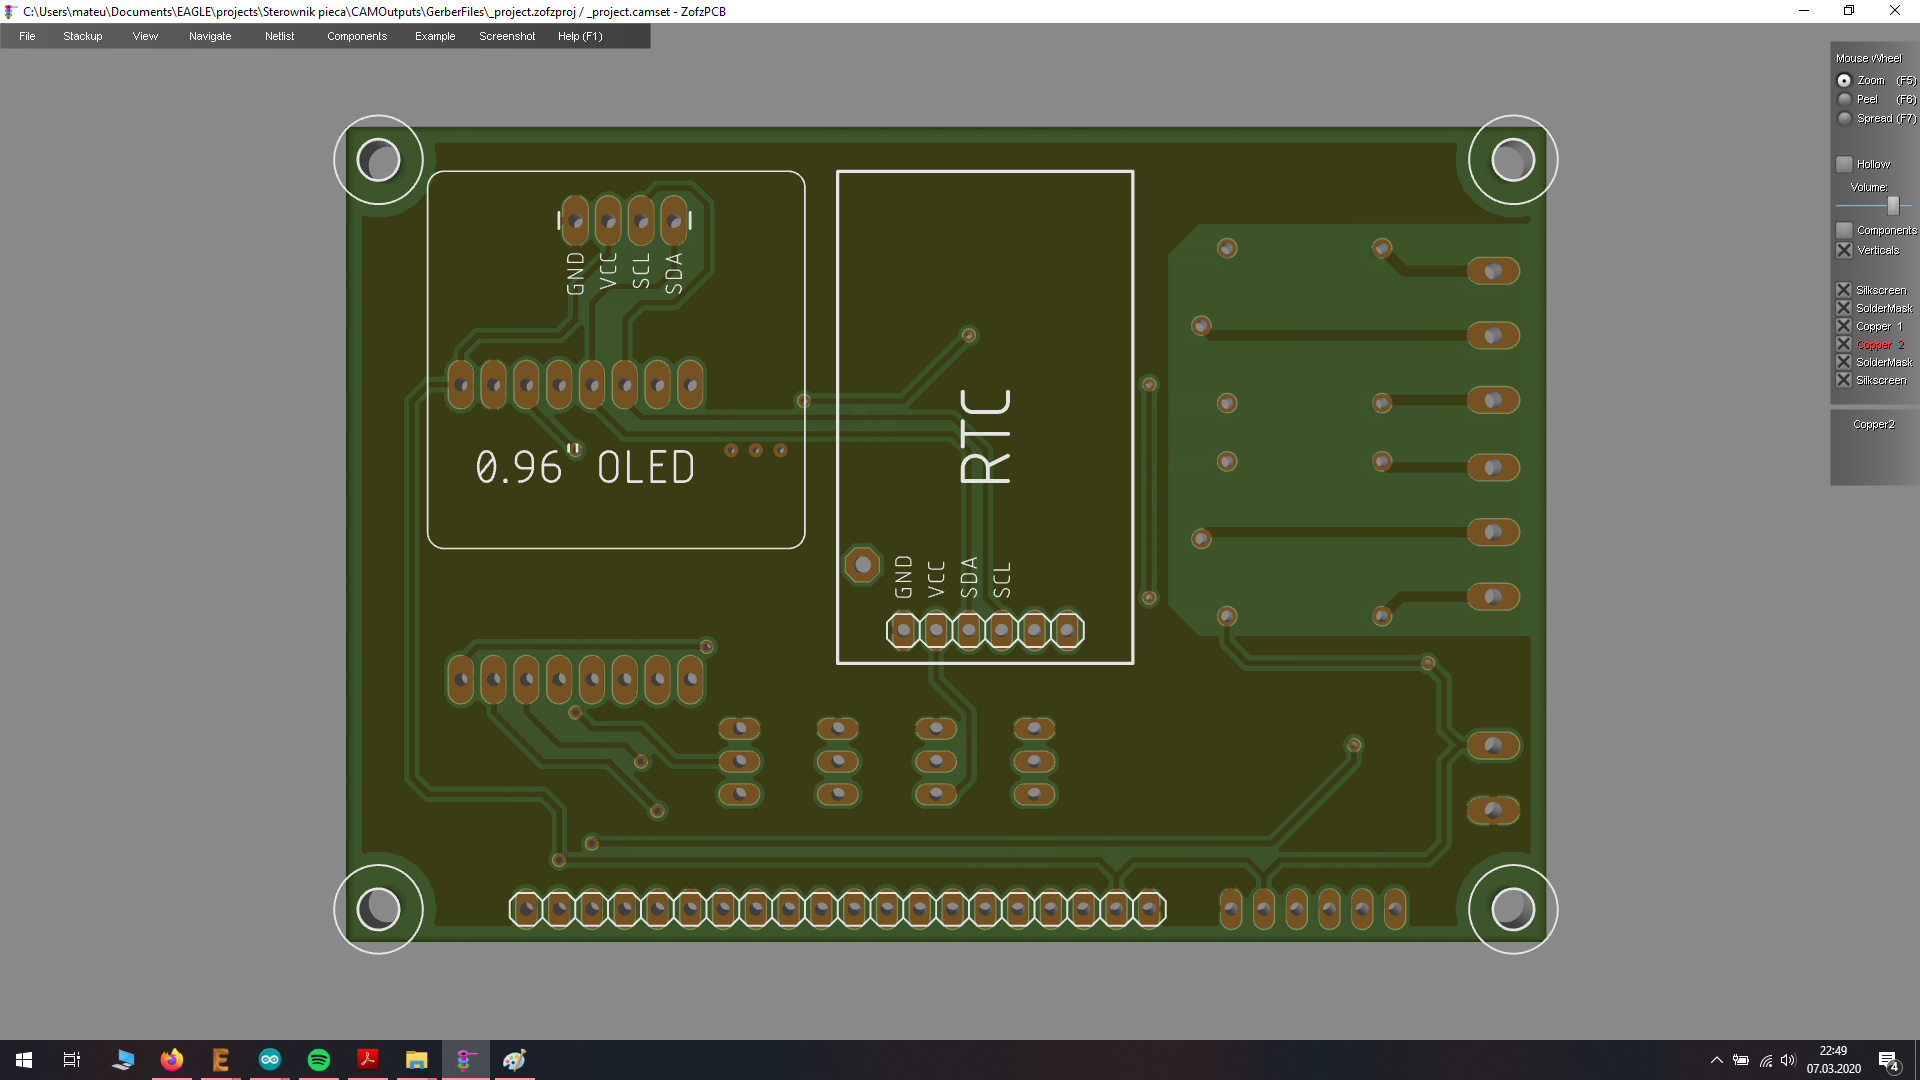 termostat pcb bottom.png